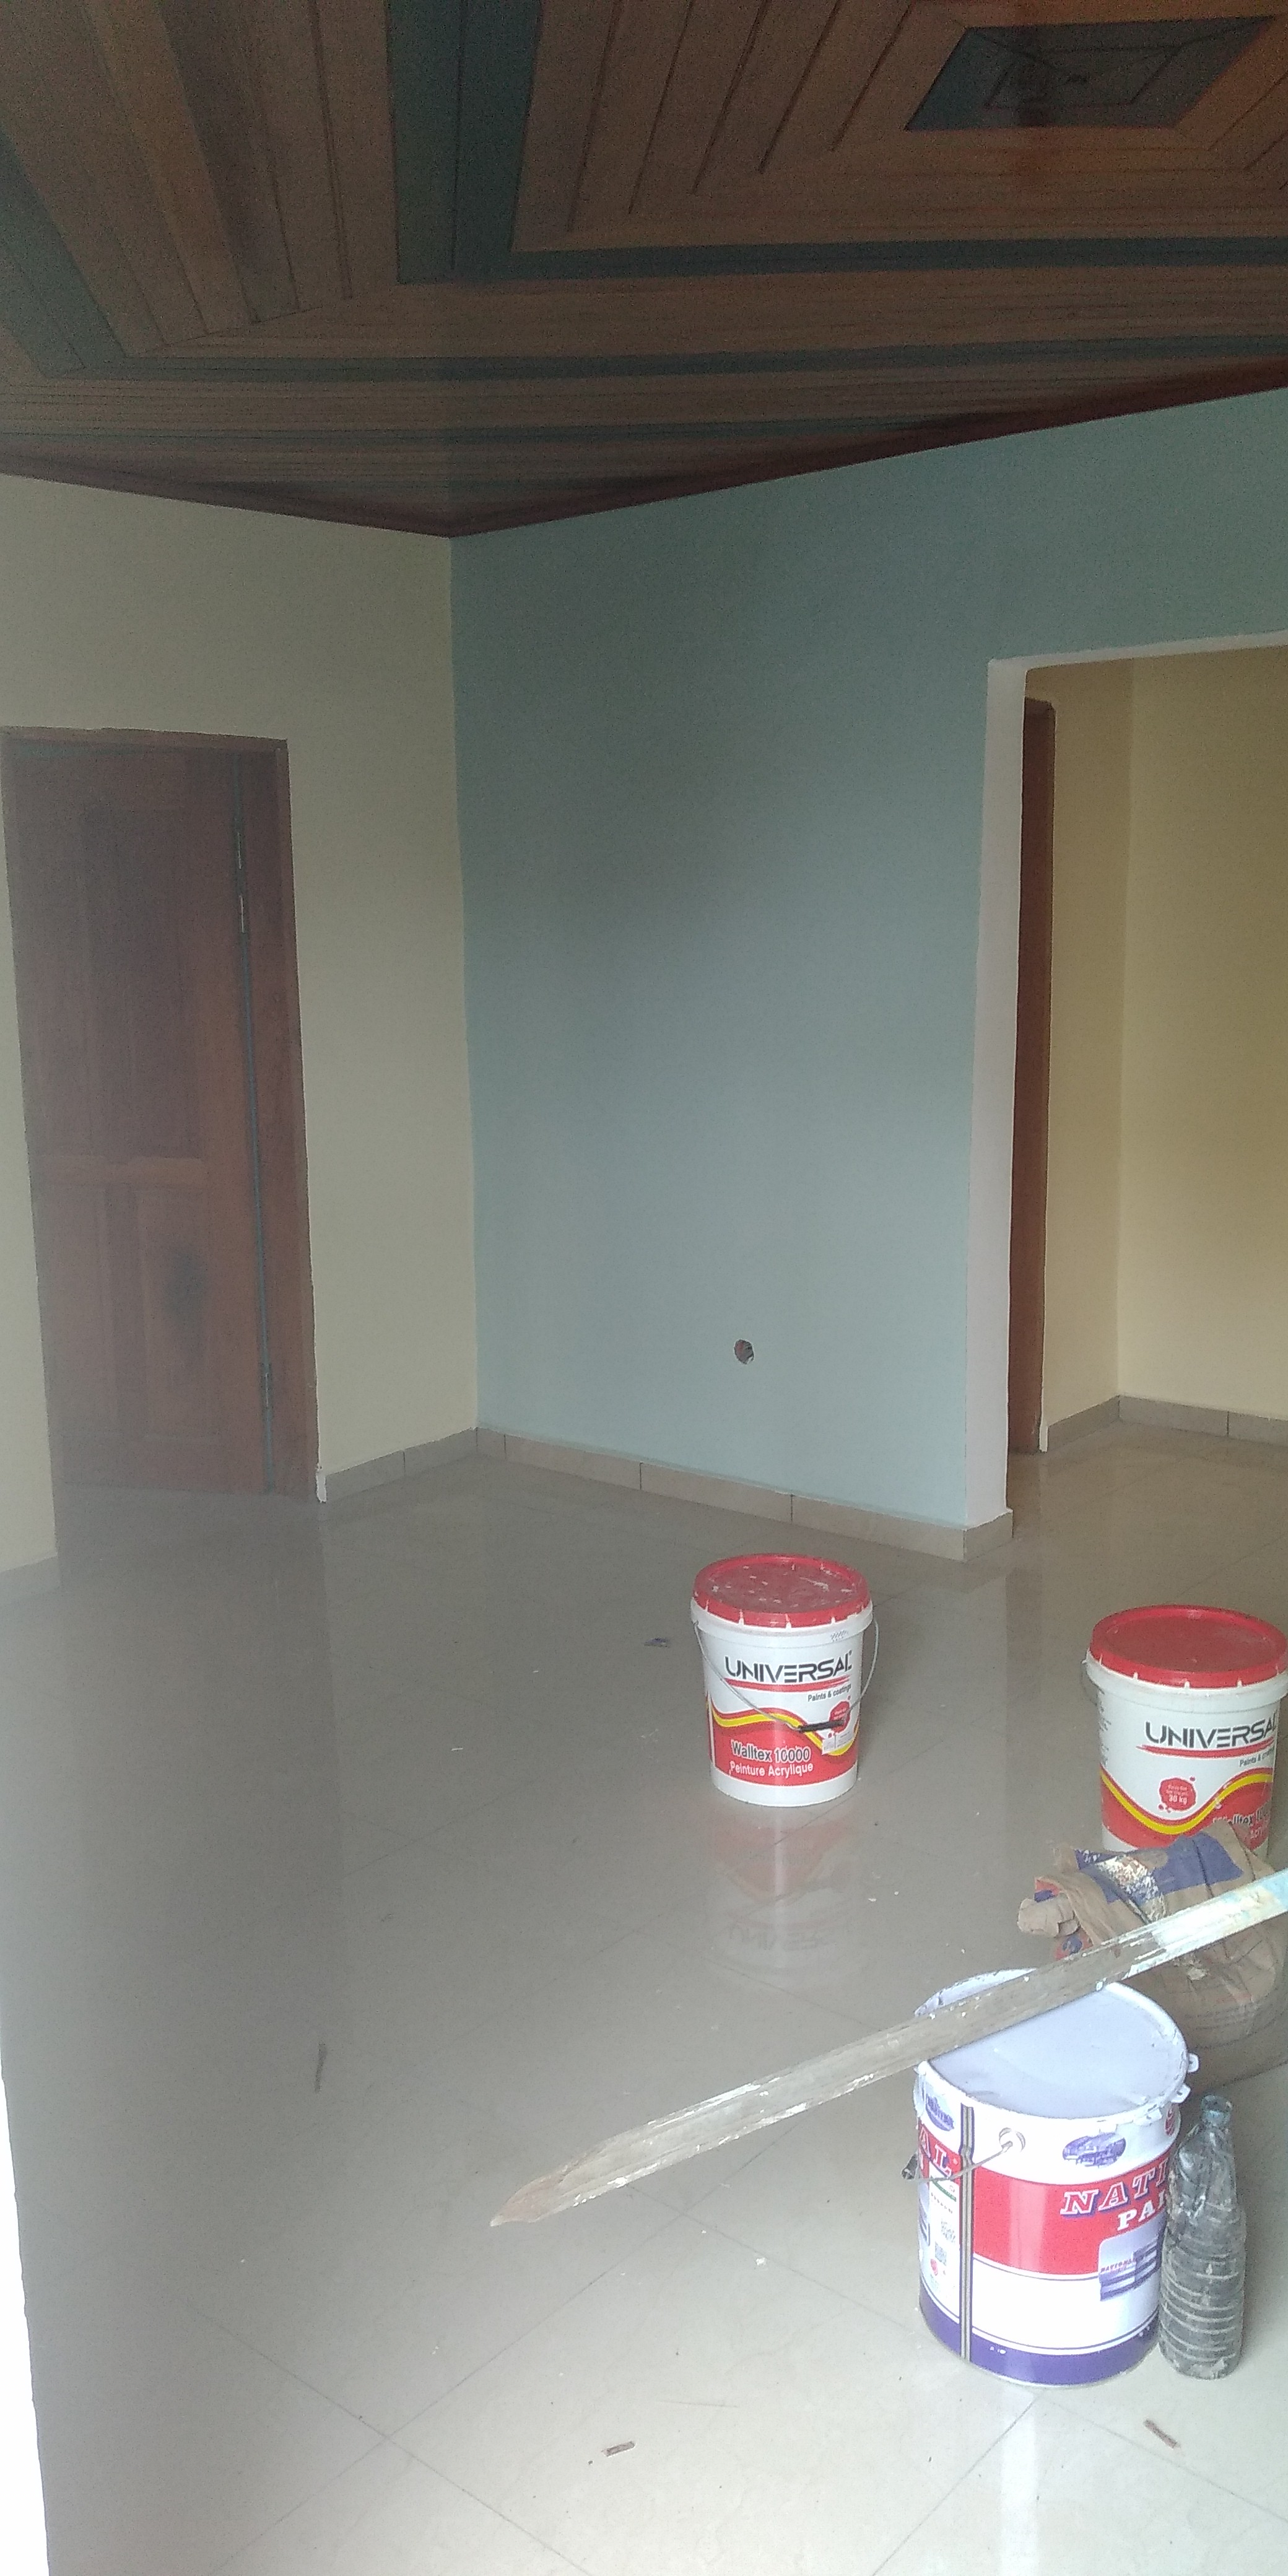 Apartment to rent - Douala, Logpom, Carrefour Gabon Bar - 1 living room(s), 2 bedroom(s), 1 bathroom(s) - 85 000 FCFA / month